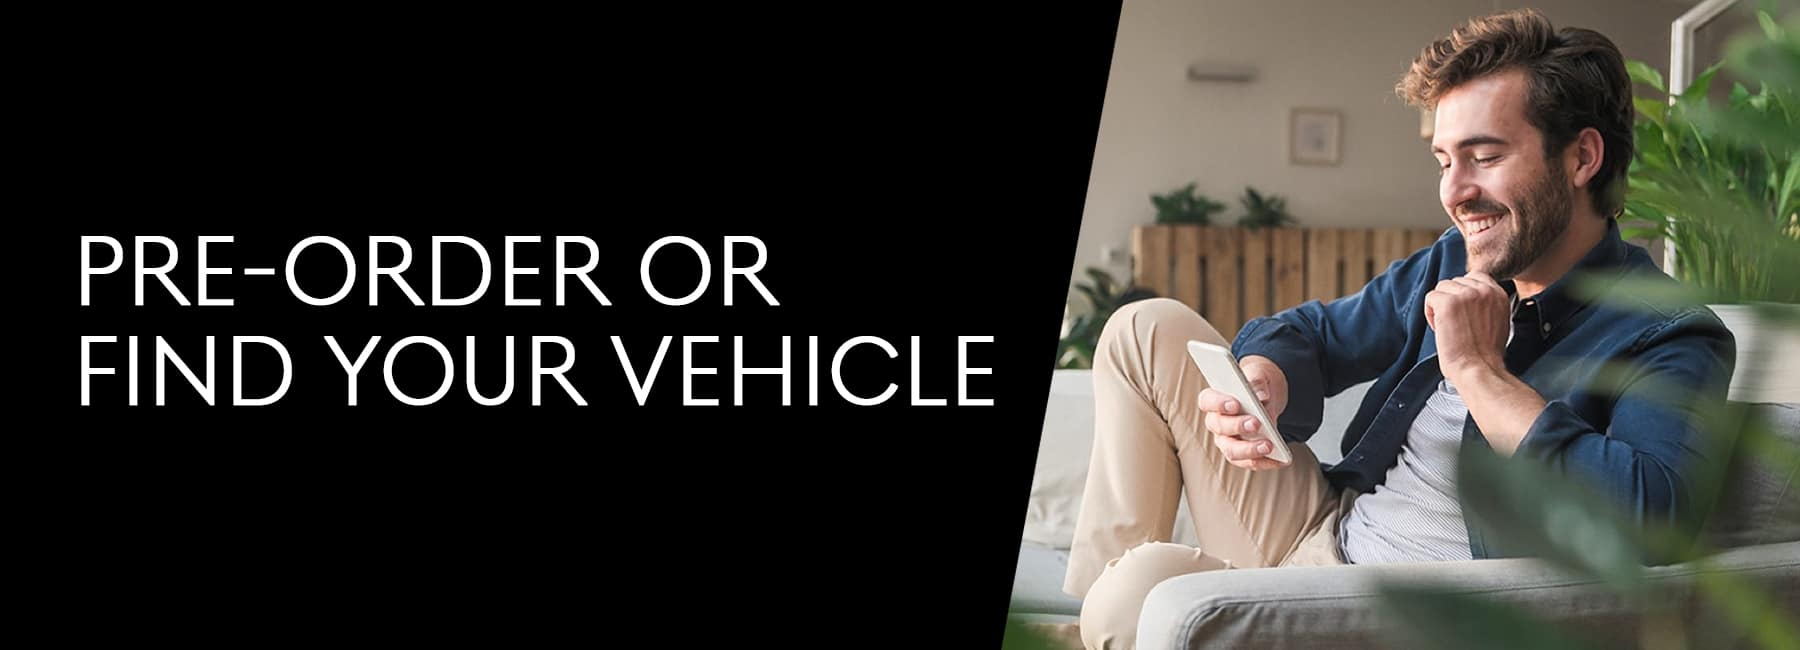 Pre-Order or Find Your Vehicle at Genesis of Schaumburg in Schaumburg IL